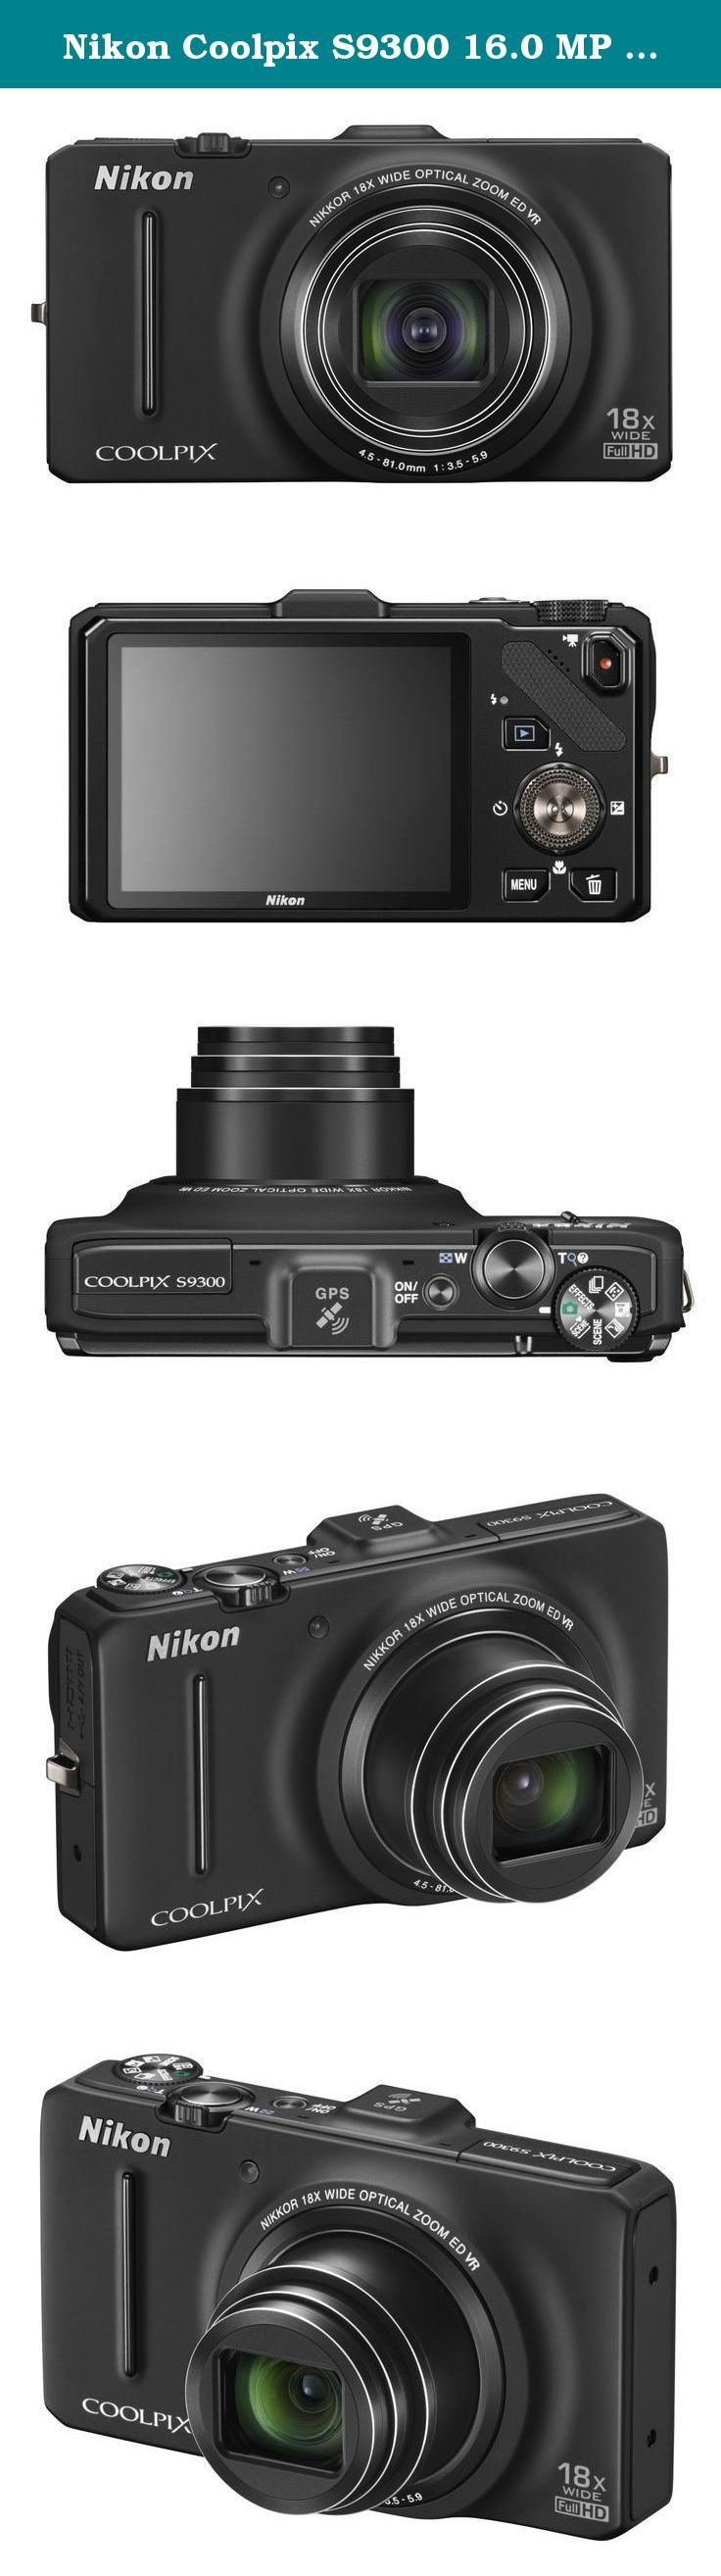 Nikon Coolpix S9300 16.0 MP Digital Camera - Black (Discontinued by Manufacturer). Power and portability blend perfectly into the Nikon COOLPIX S9300 . This digital camera features 16MP backside-illuminated CMOS, 18x wide-angle optical zoom lens, VR image stabilization, built-in GPS, Full HD (1080p) video, 3.0-inch LCD, Easy Panorama Mode, 7 fps shooting, Backlight HDR Mode, ISO sensitivity up to 3200, Smart Portrait System, and more! What's in the box? MH-65 Battery Charger; EH-62F AC...